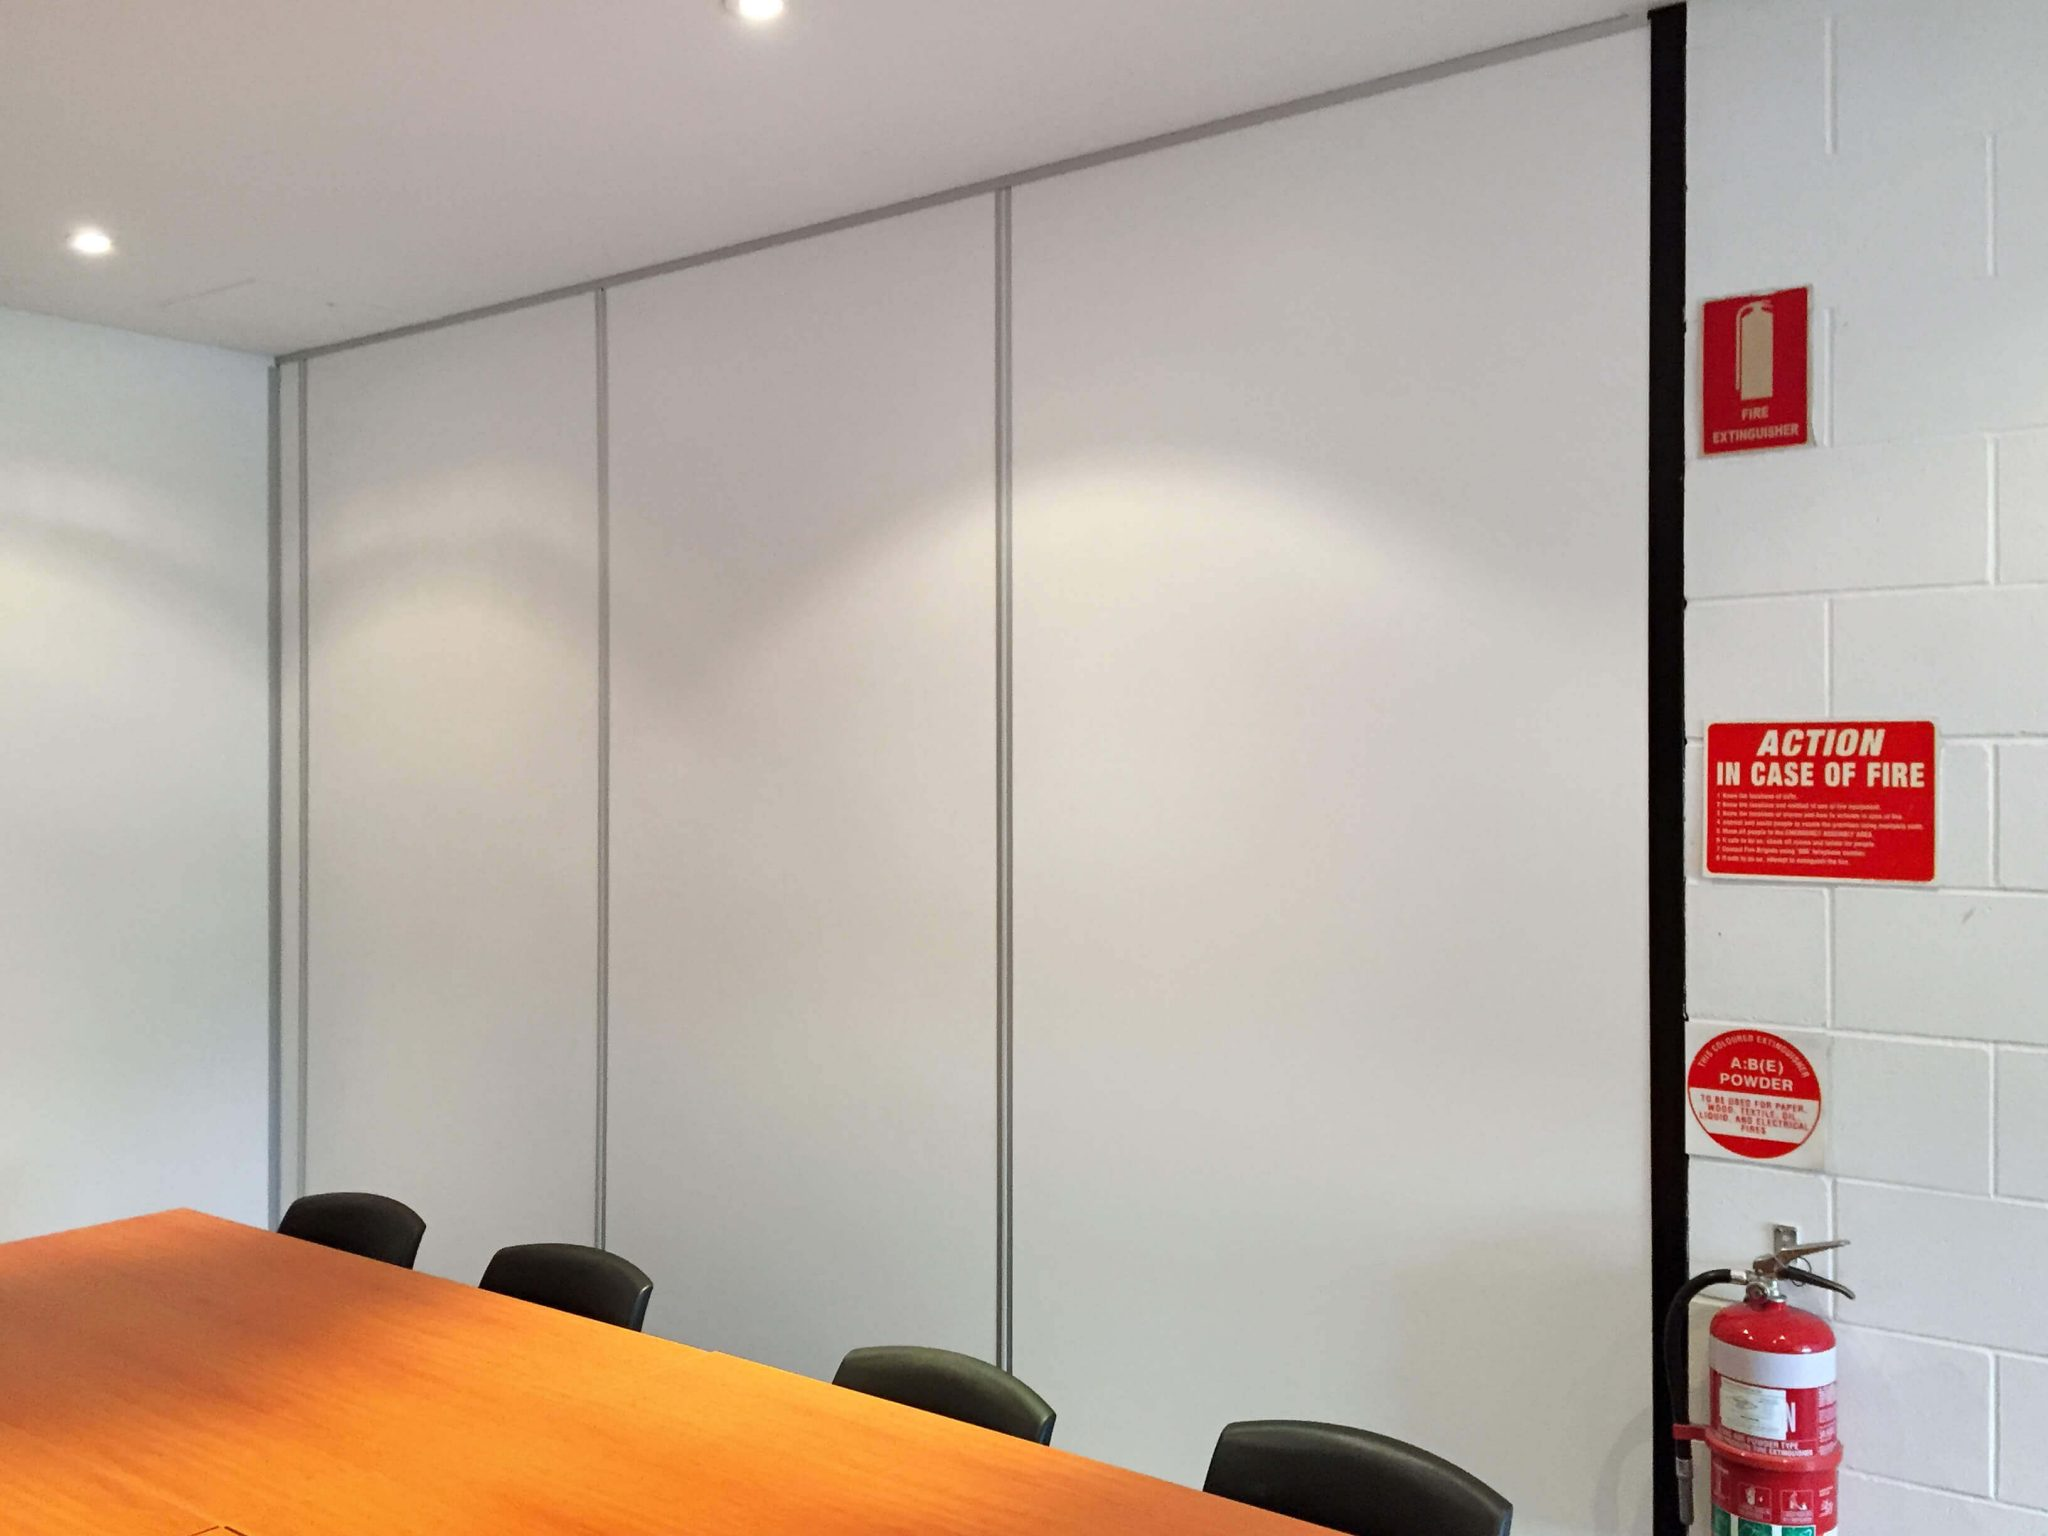 Partition Fit outs completed by Otal Constructions 2